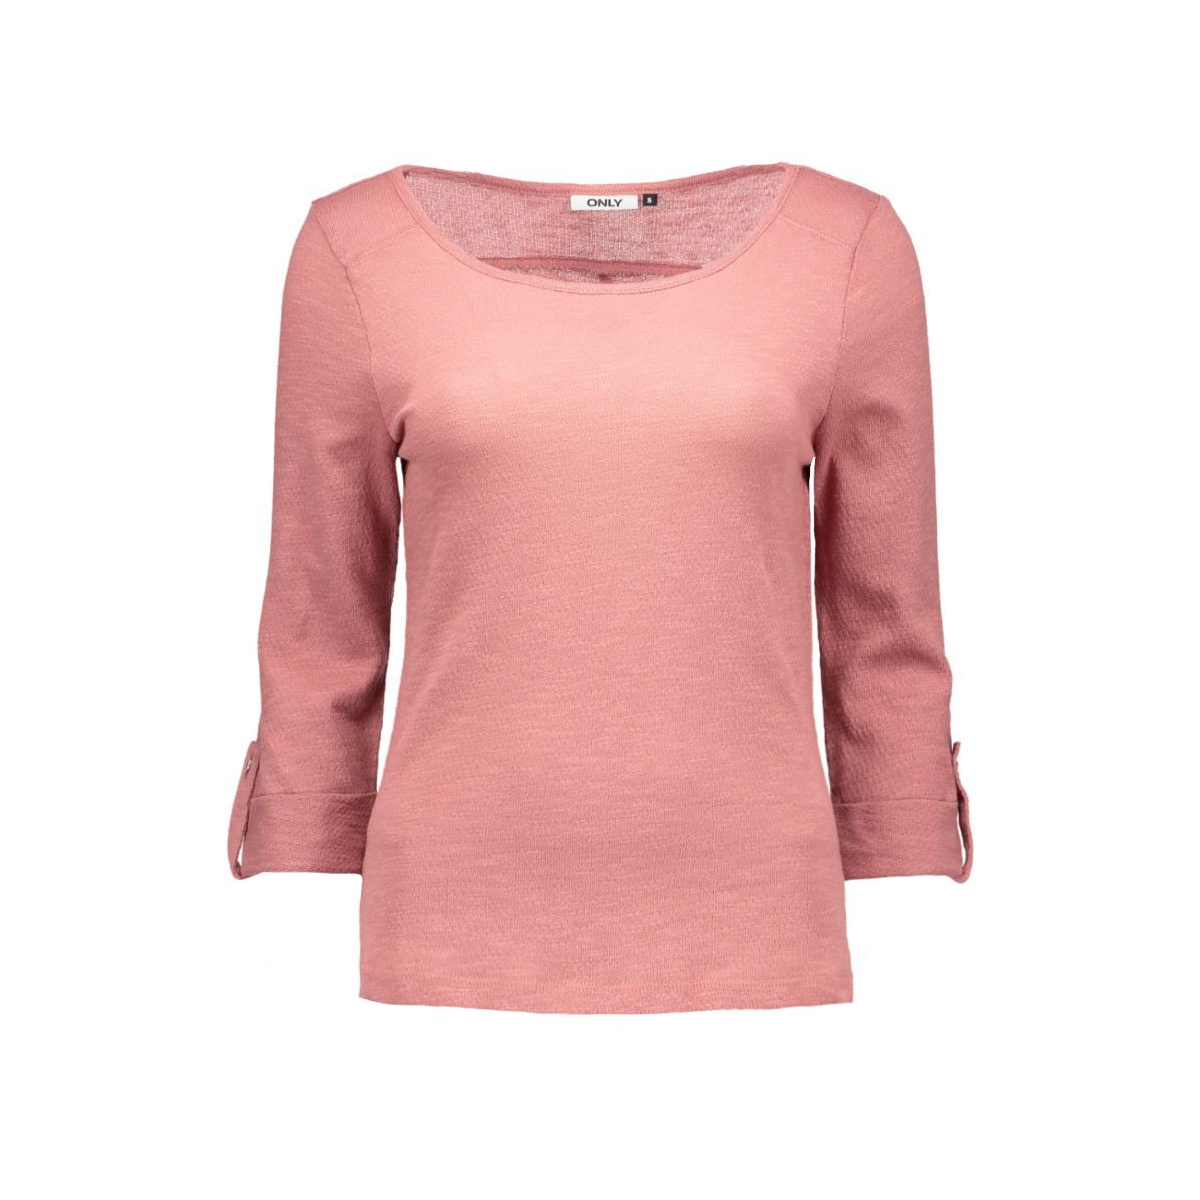 onljess 3/4 top jrs noos 15096632 only t-shirt withered rose